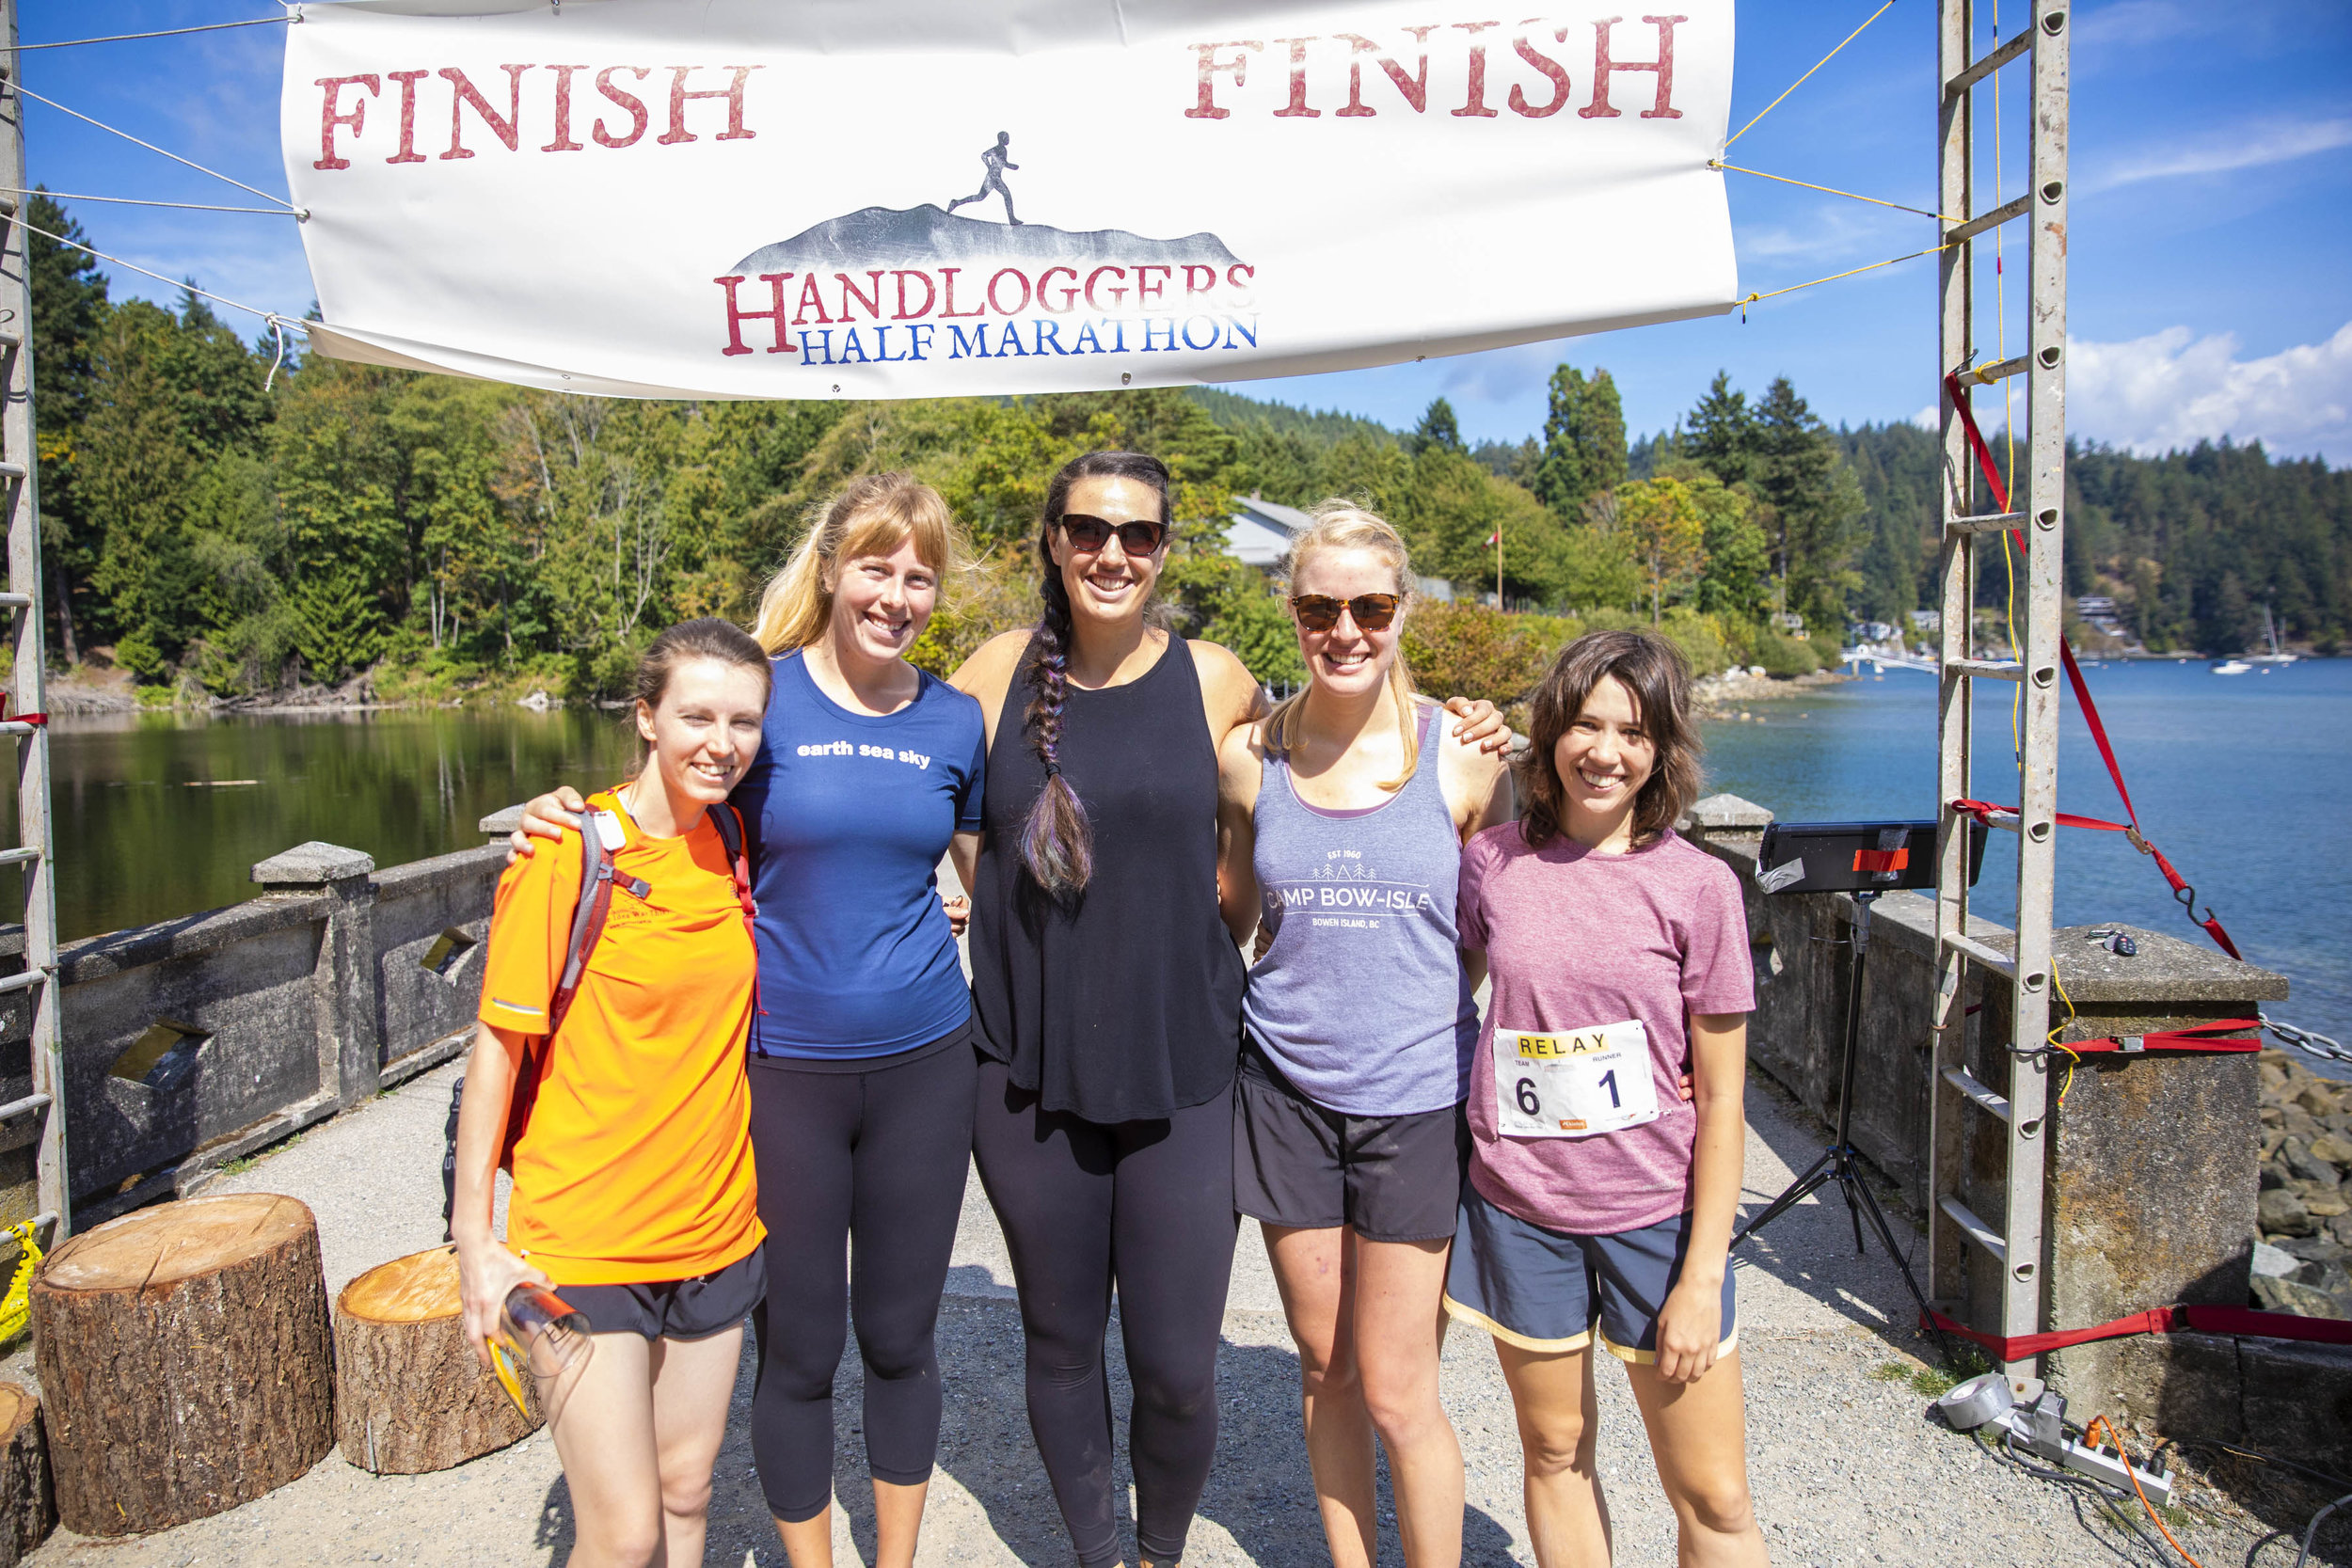 2019 Handloggers Half Marathon and Relay - The sixth annual Handloggers Race takes place on Saturday, August 31, 2019. Check out the race details or contact us with questions. Thanks to our sponsors and we are truly grateful for the support of our charities.Like us on Facebook to stay up to date on latest race announcements and training opportunities.